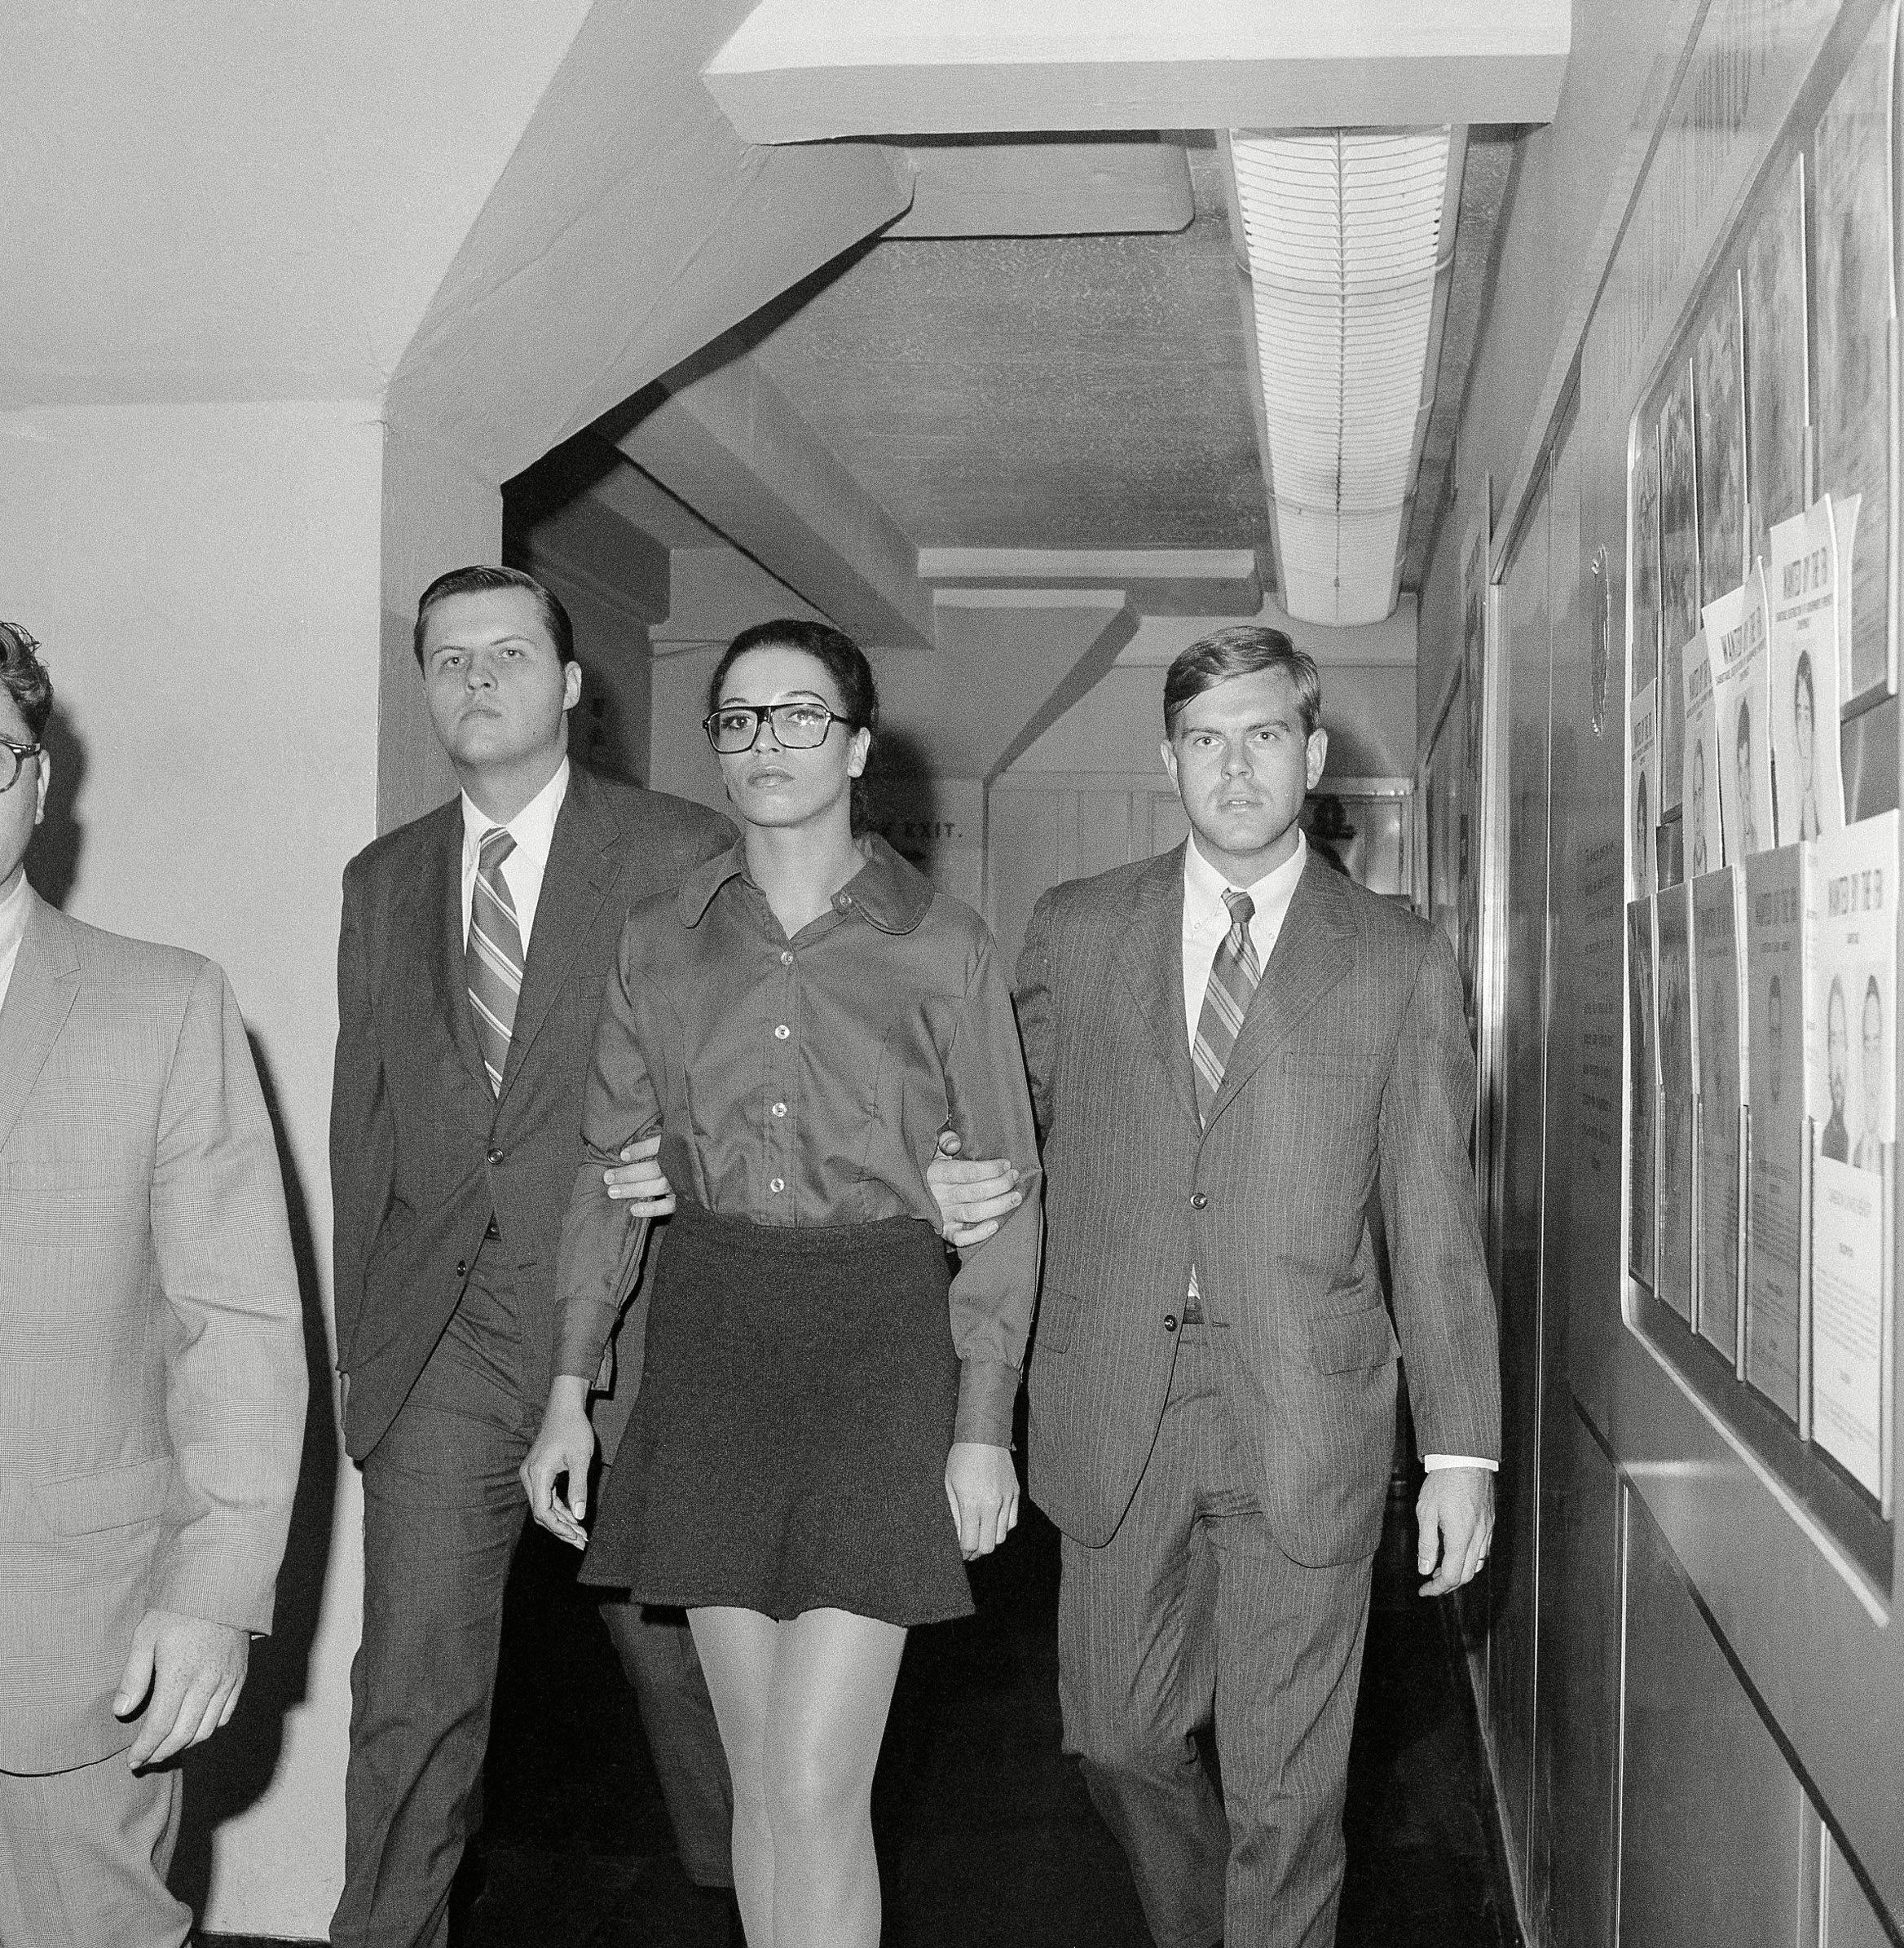 Angela Davis, first woman ever listed among the FBI's Ten Most Wanted Fugitives, is escorted by two FBI agents after her arrest in New York on . She was being taken from FBI headquarters to the Women's House of Detention. Wanted in connection with the August 7 California courtroom kidnapping, she was arrested in a midtown New York motel 13 Oct 1970